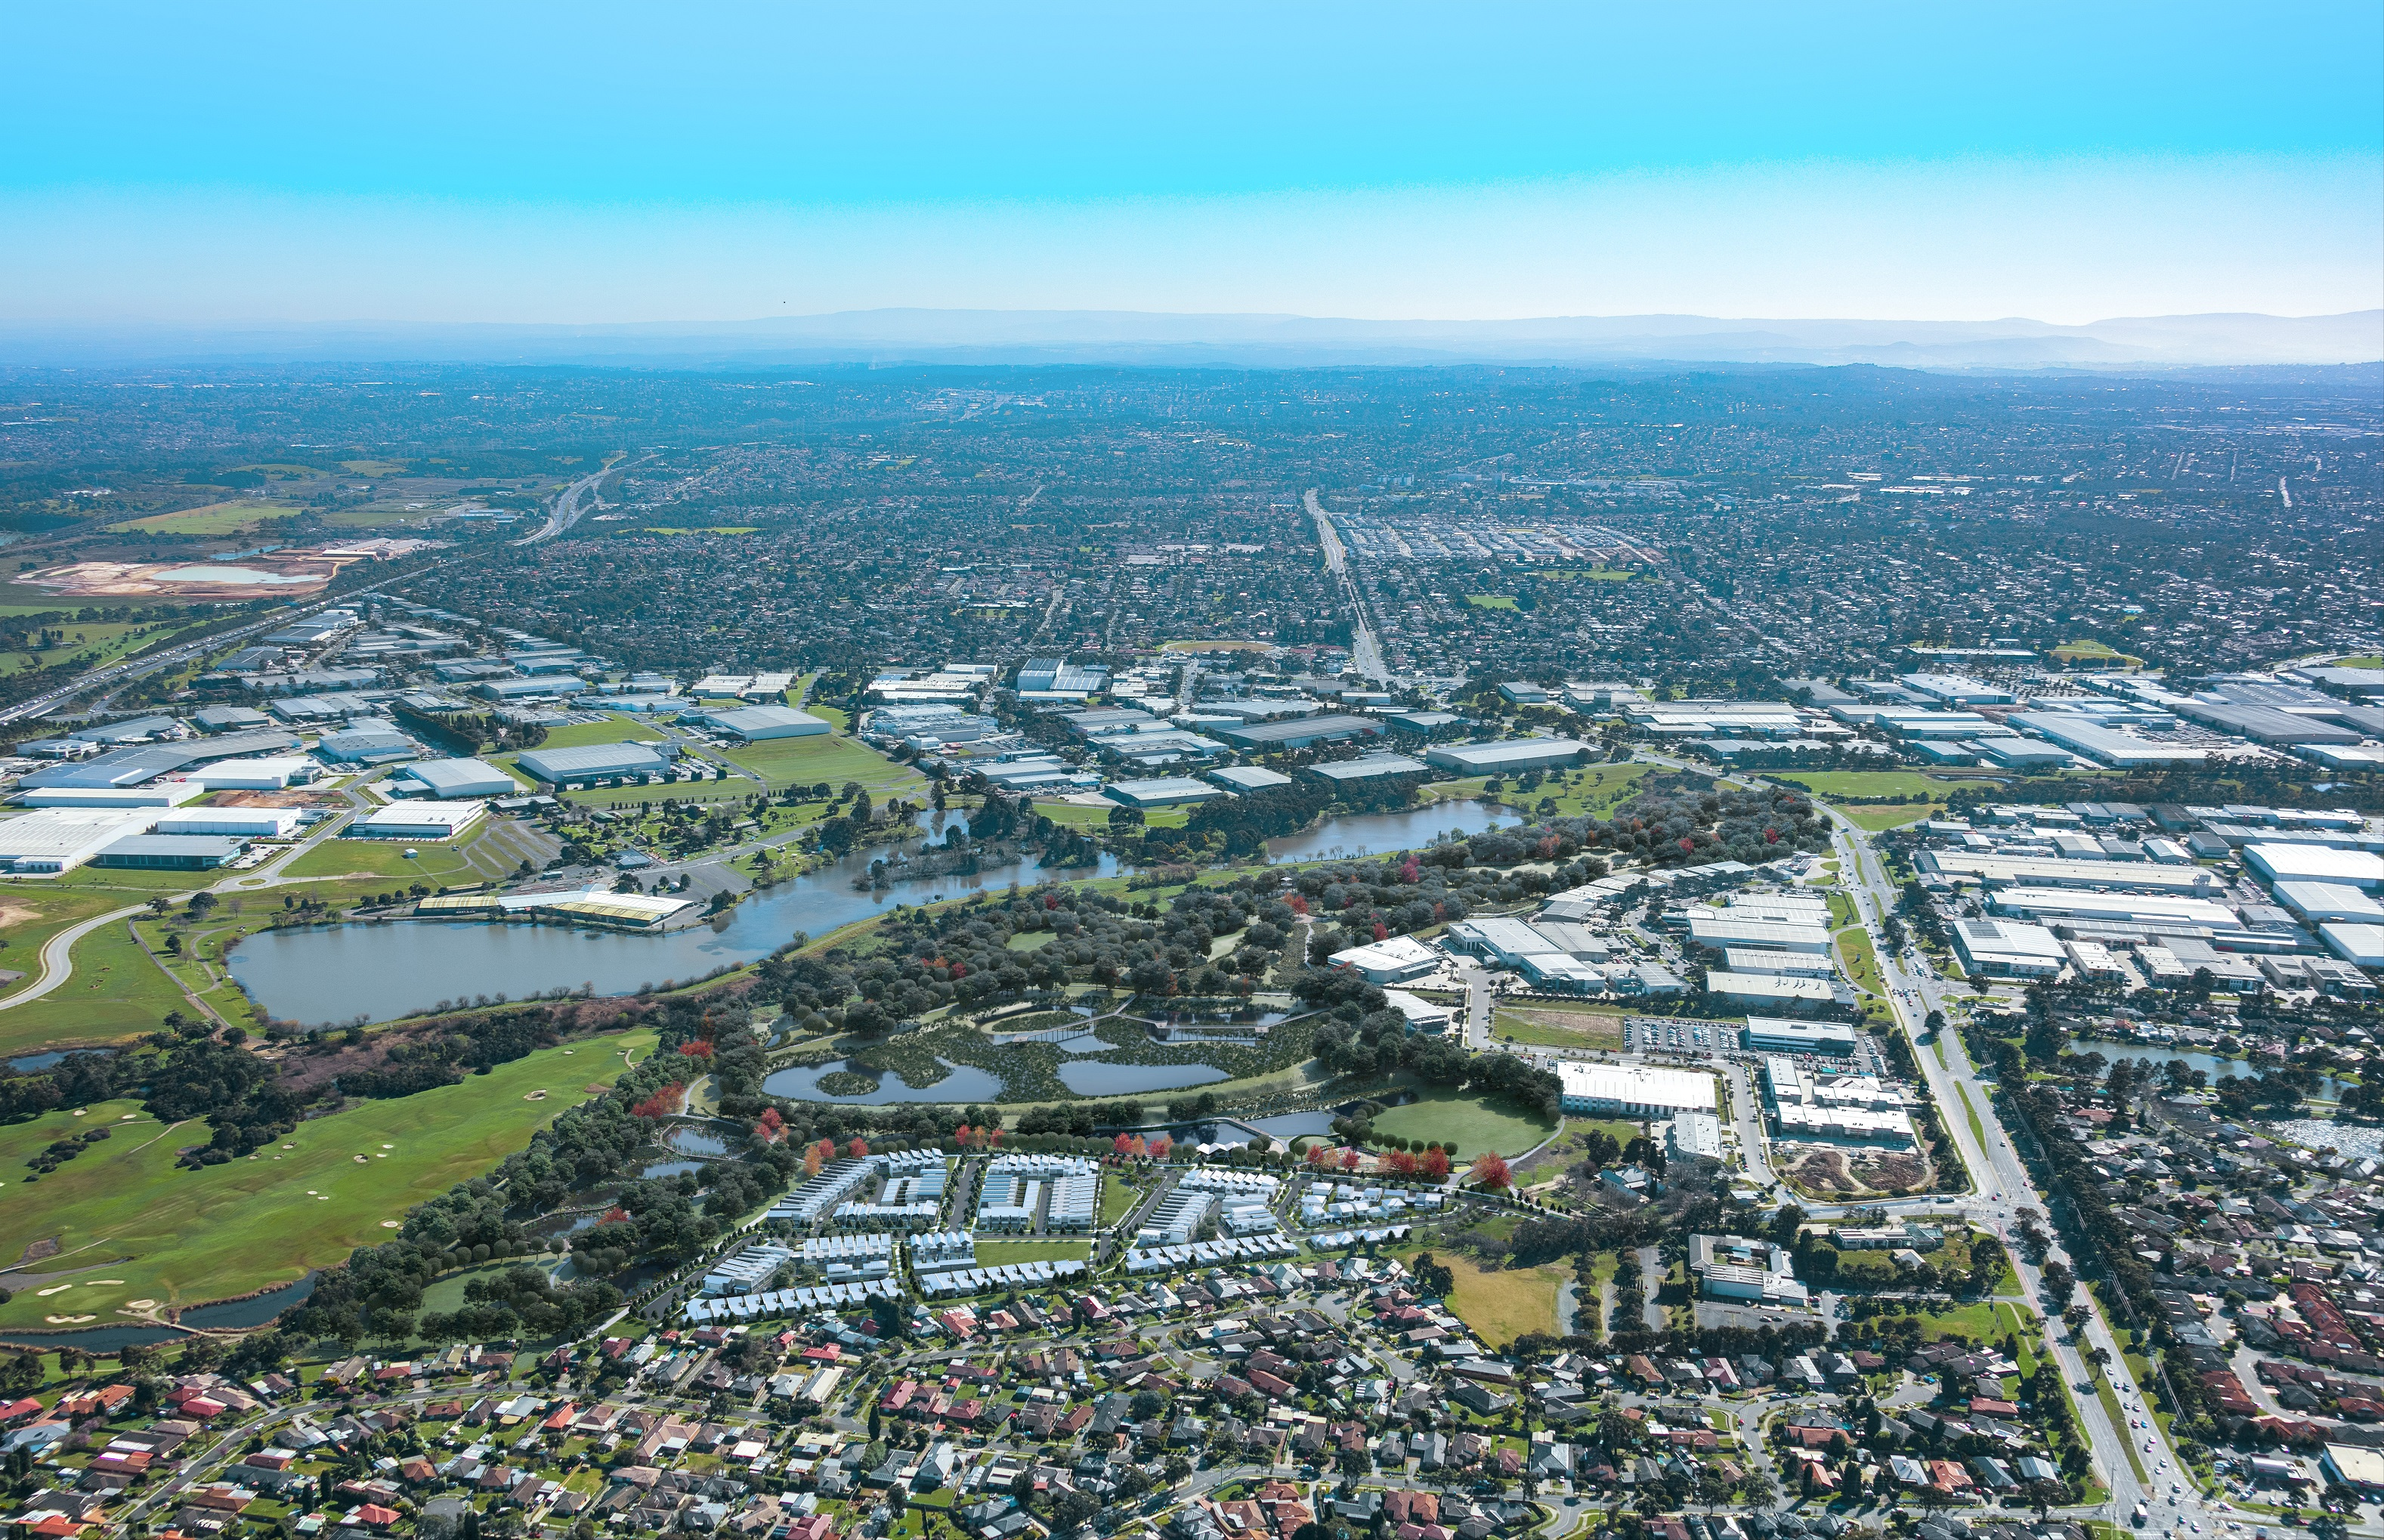 The development incorporates 45 hectares of parkland and heritage precinct with 190 homes.